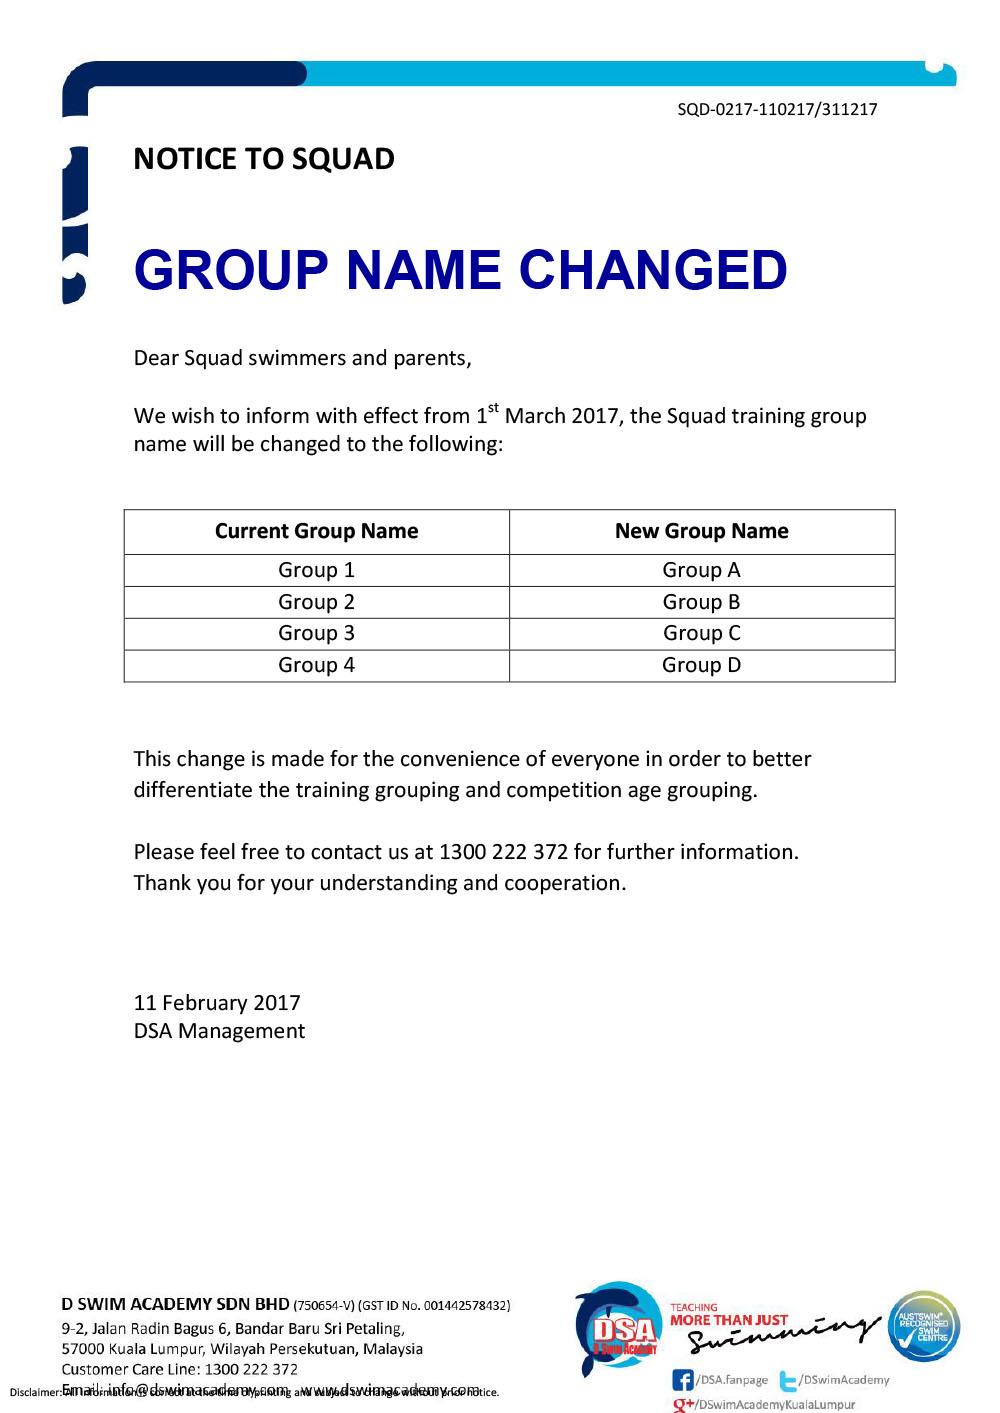 SQD-0217-Squad Group Name Change